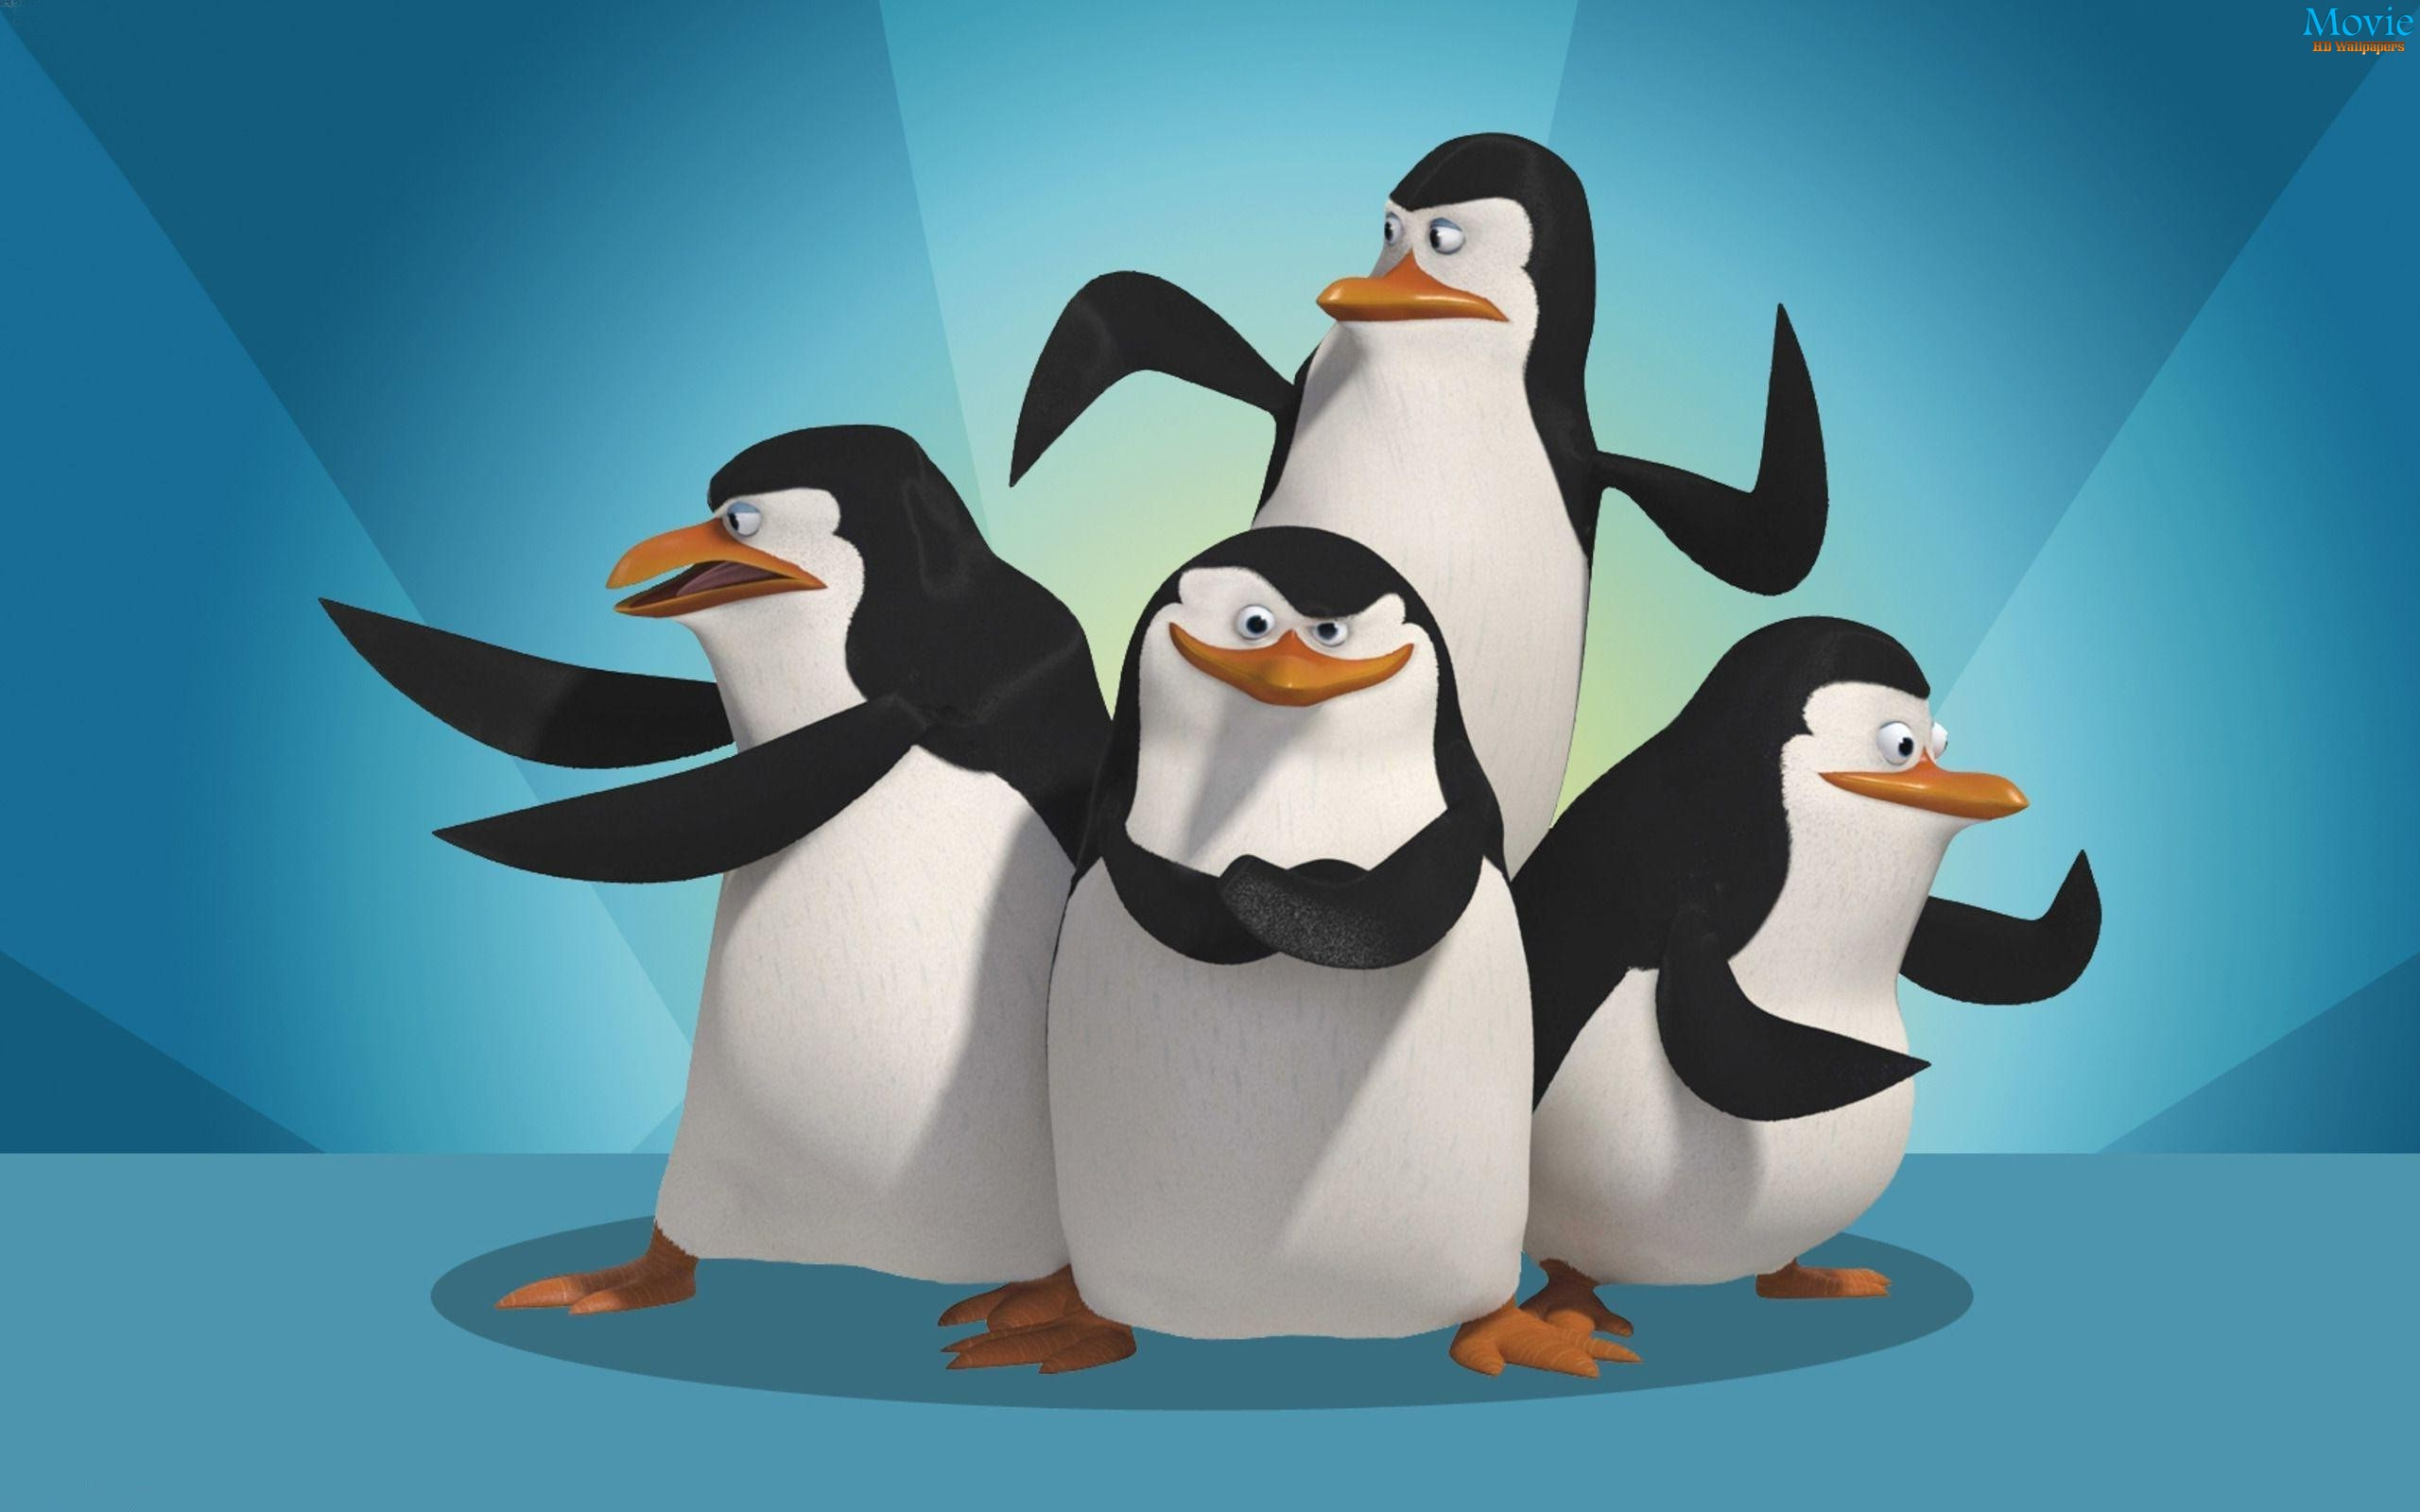 Penguins of madagascar movie hd wallpapers - Madagascar wallpaper ...